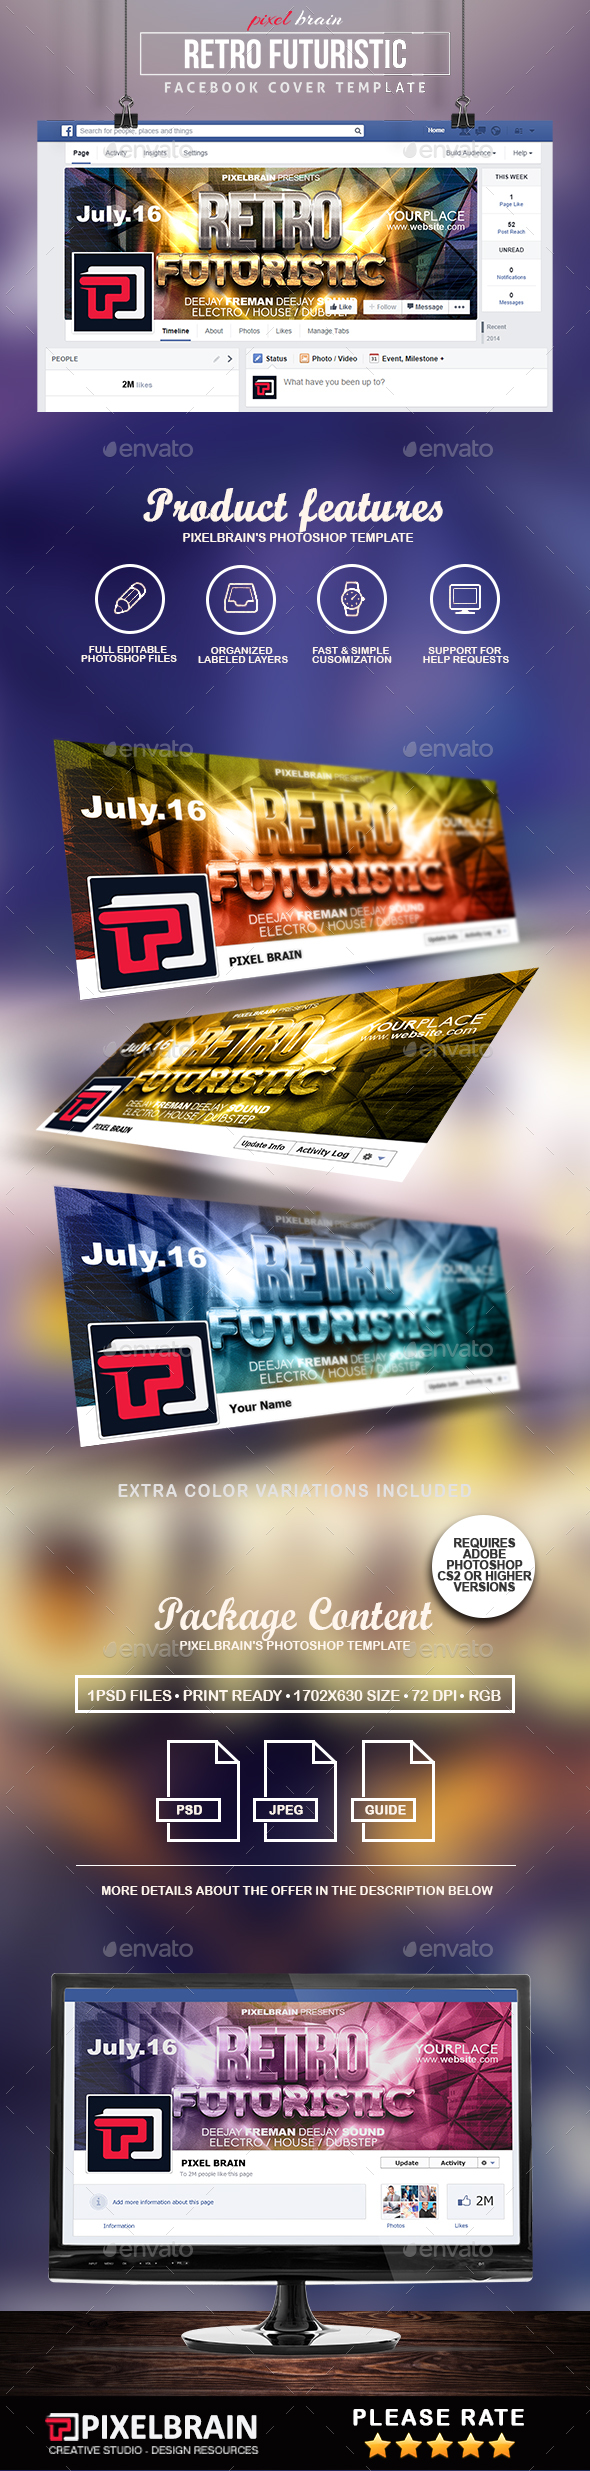 Retro Futuristic Facebook Cover Template - Facebook Timeline Covers Social Media